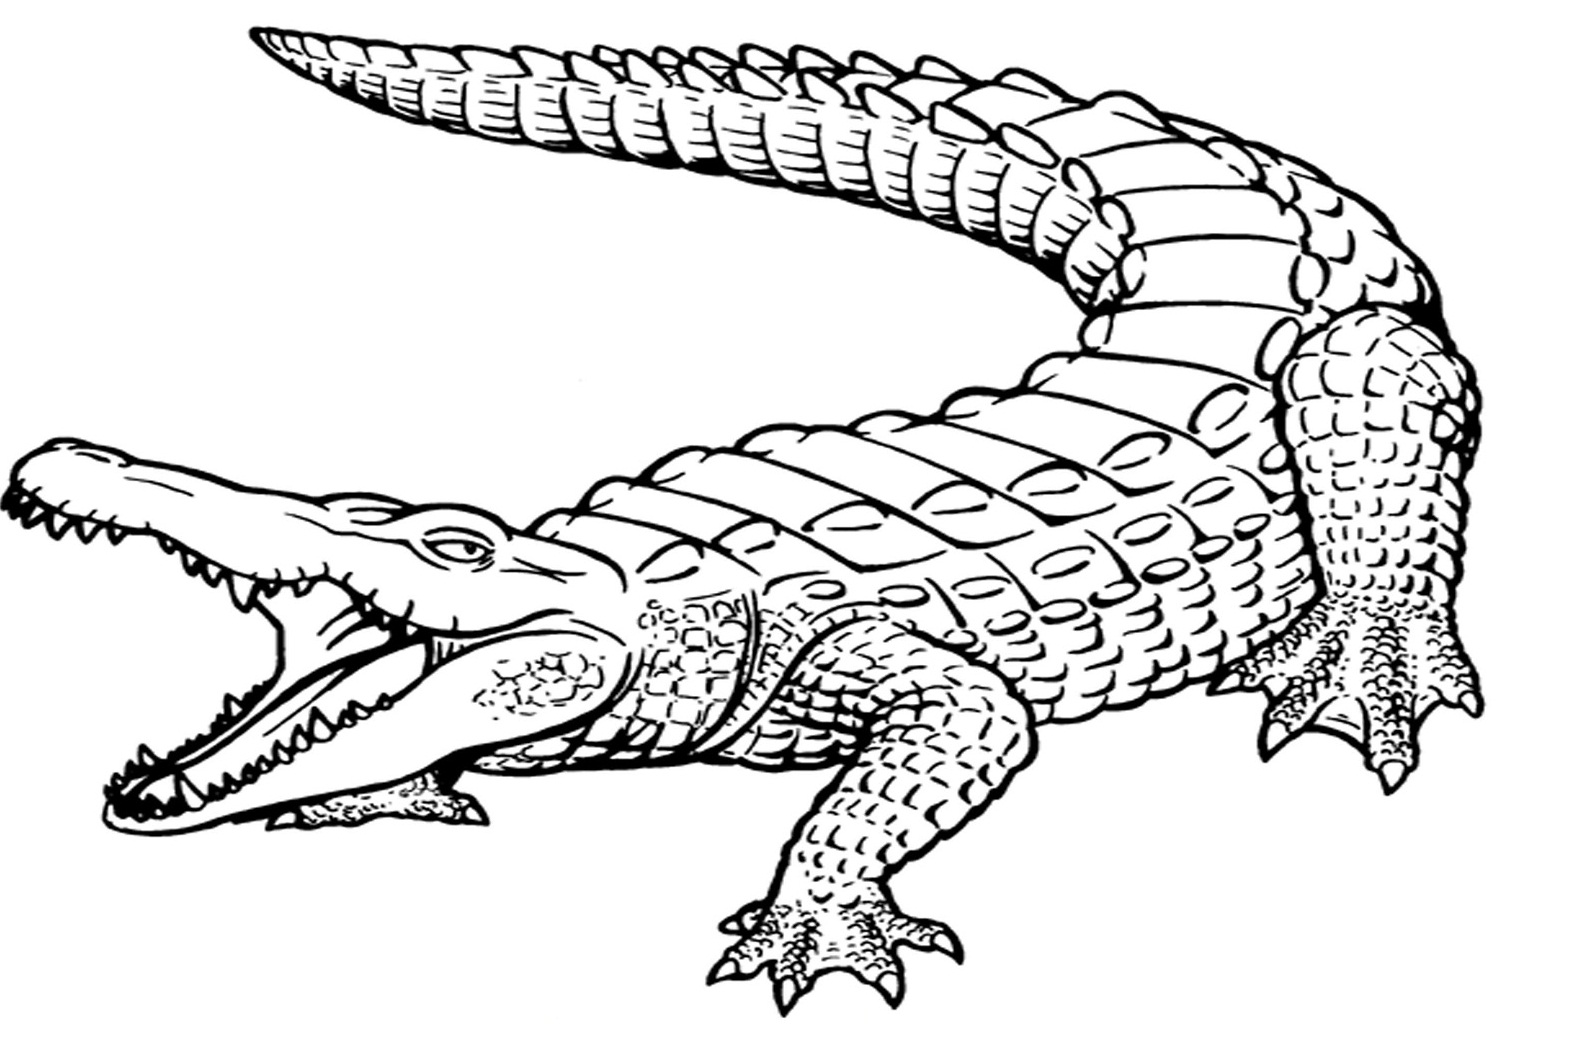 Crocodile coloring #15, Download drawings